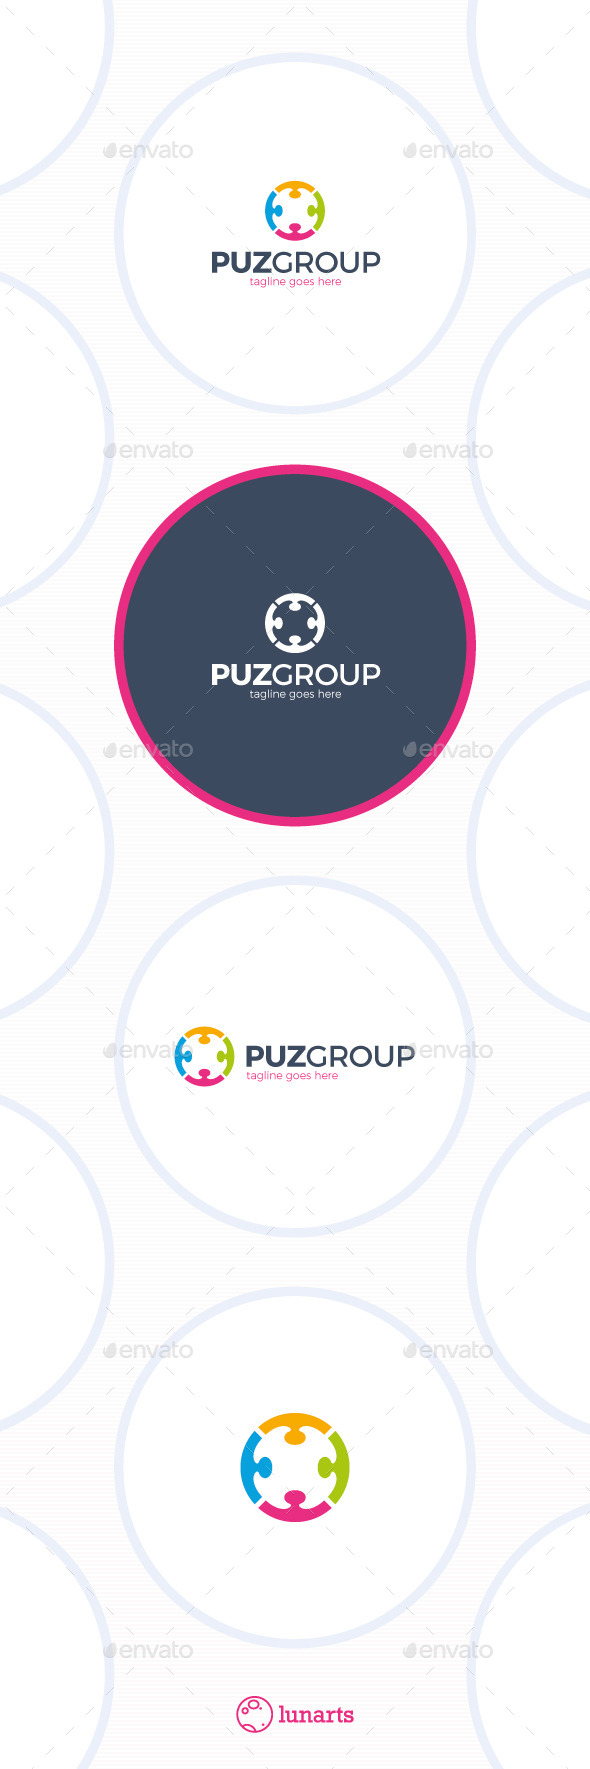 Puzzle Community Logo - Group Circle - Symbols Logo Templates